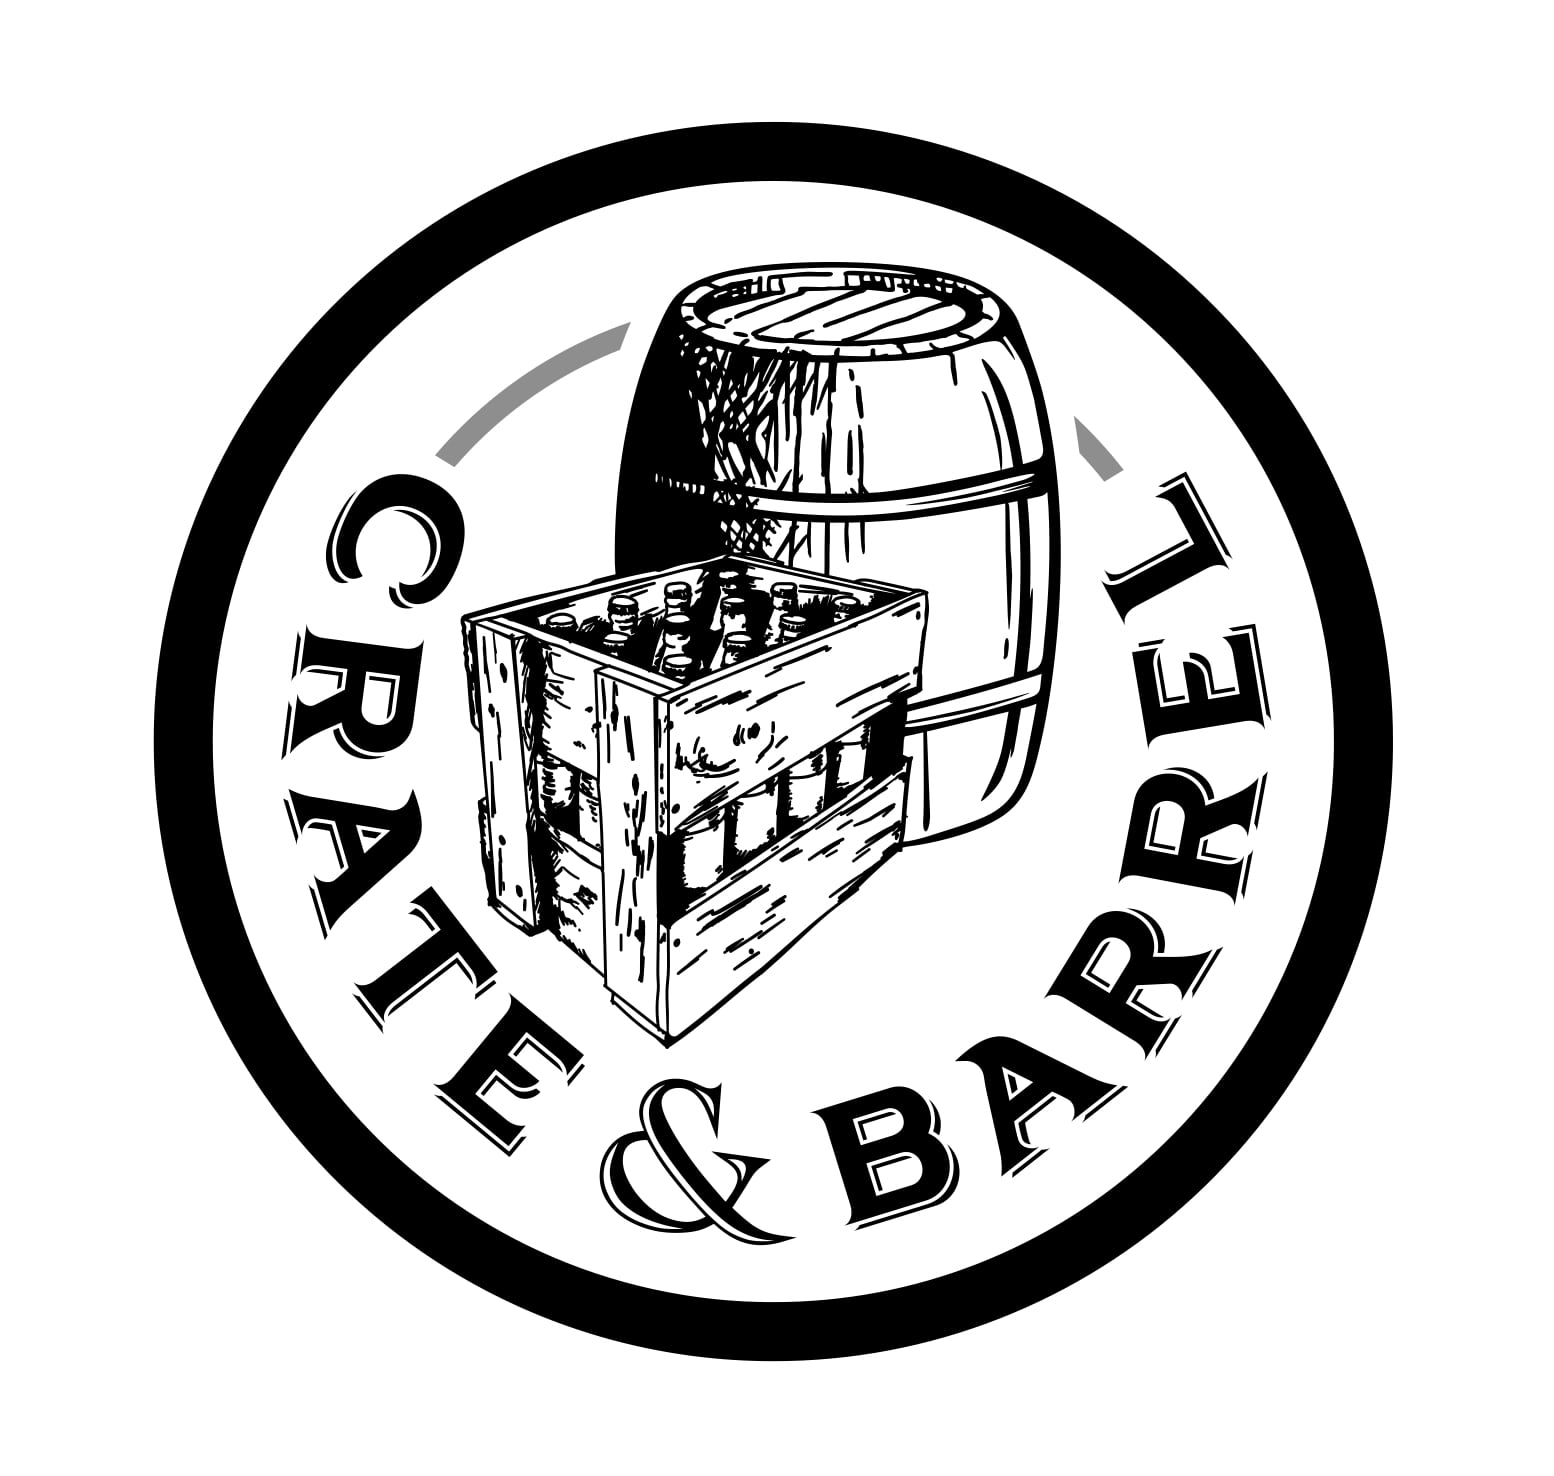 crate and barrel badge